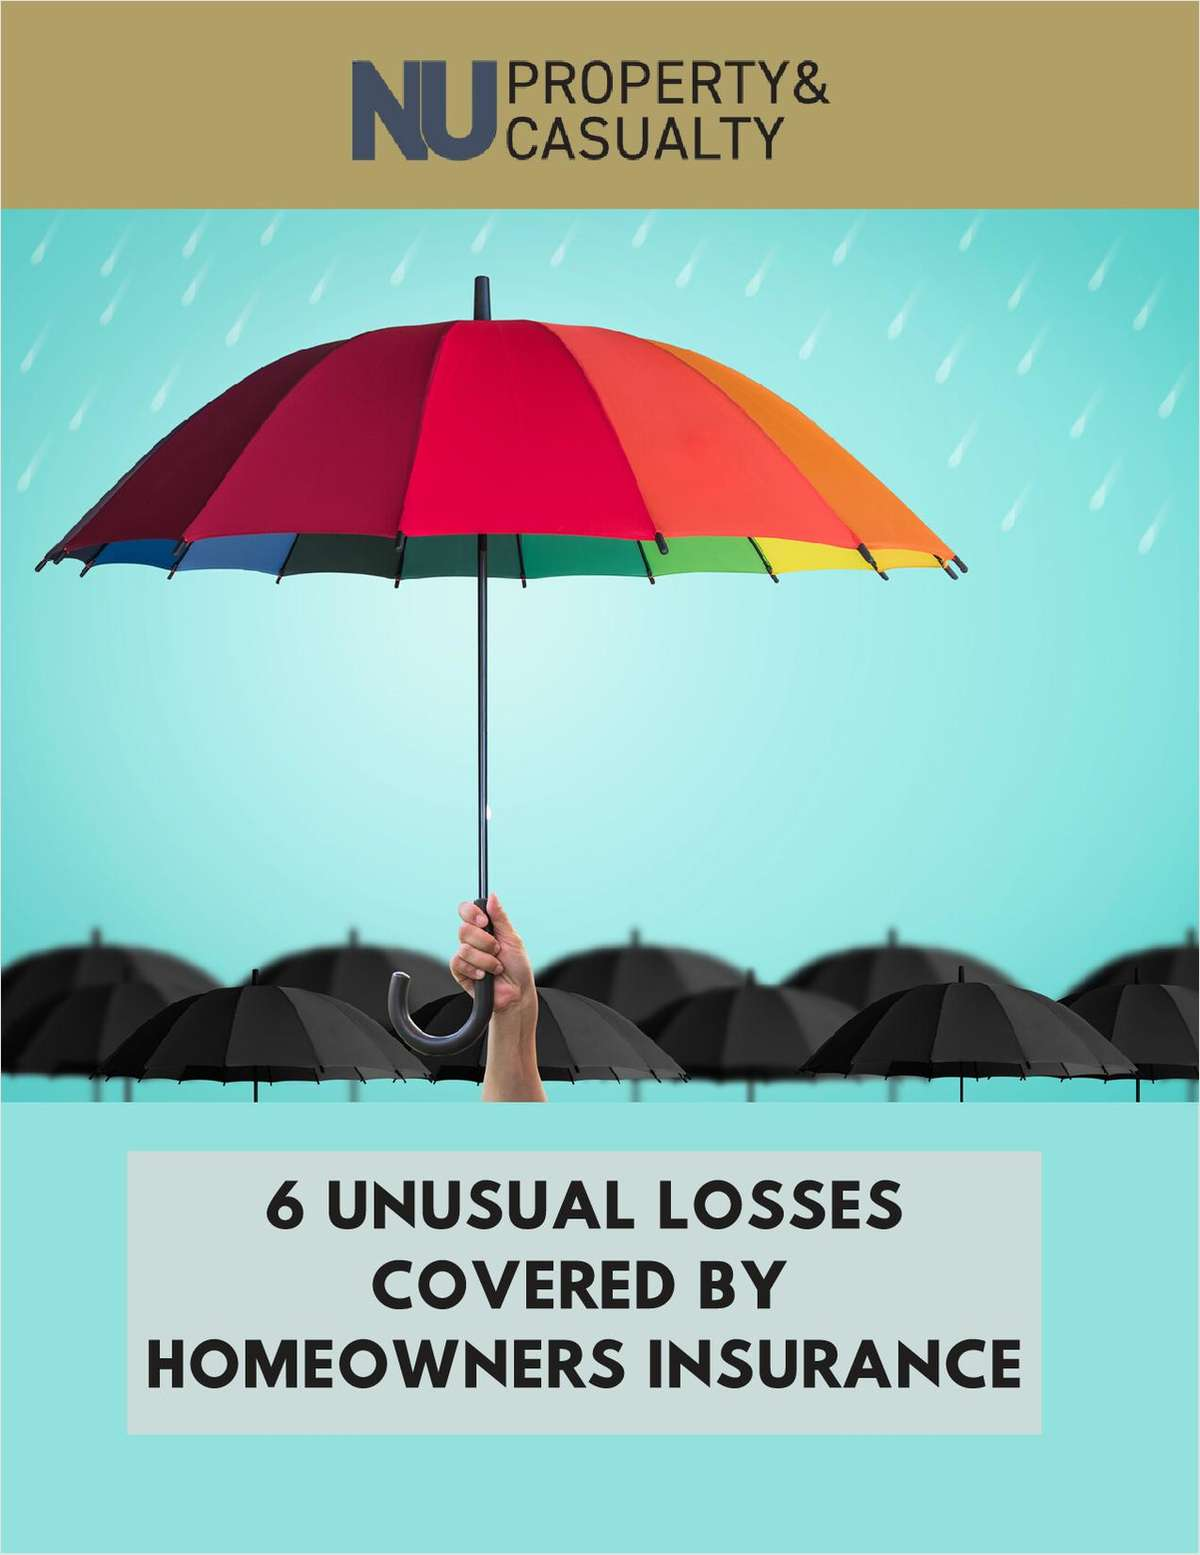 6 Unusual Losses Covered by Homeowners Insurance